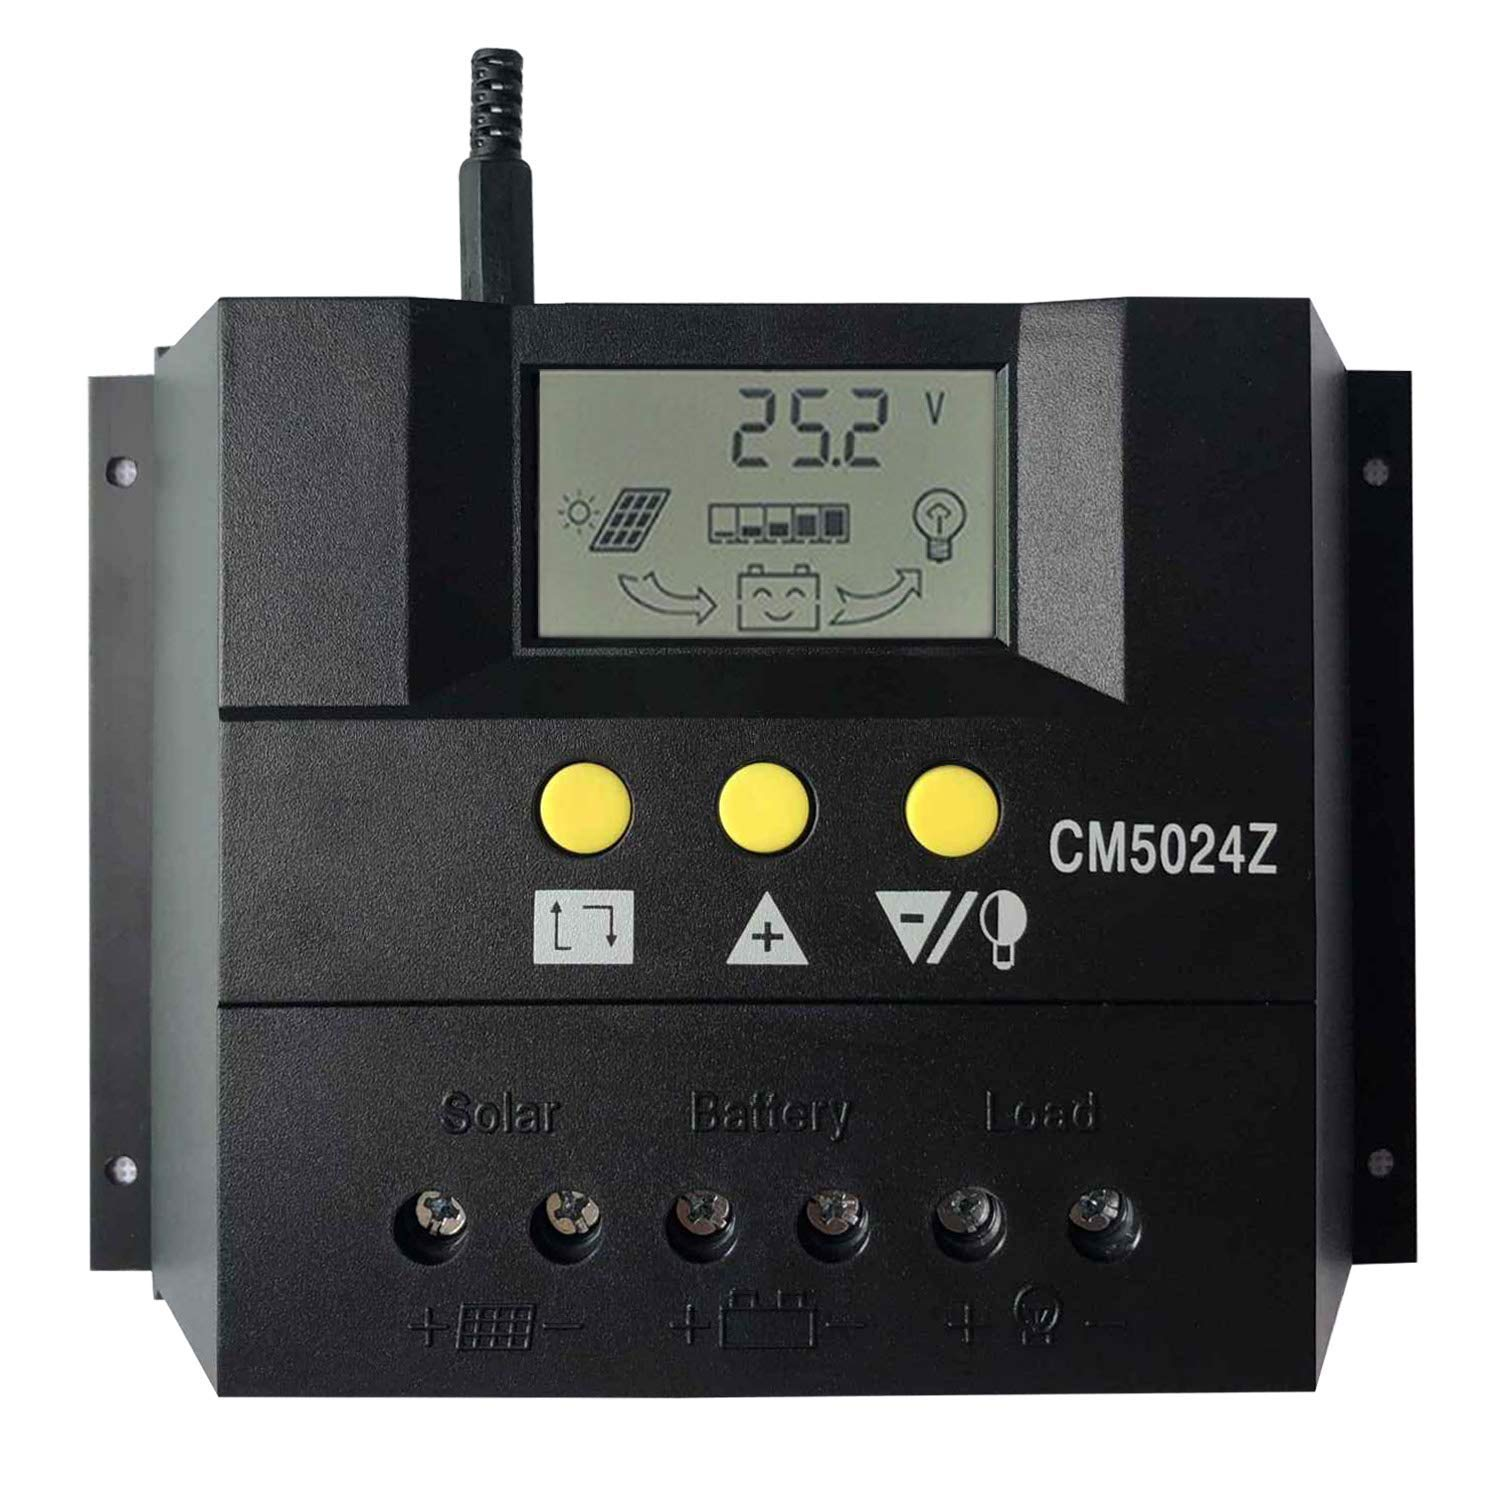 Cheap Solar Panel Circuit Diagram Battery 12v Find 24v Charger Get Quotations Krxny 50a Pwm Charge Controller Auto Regulator Charging Regulators Lcd